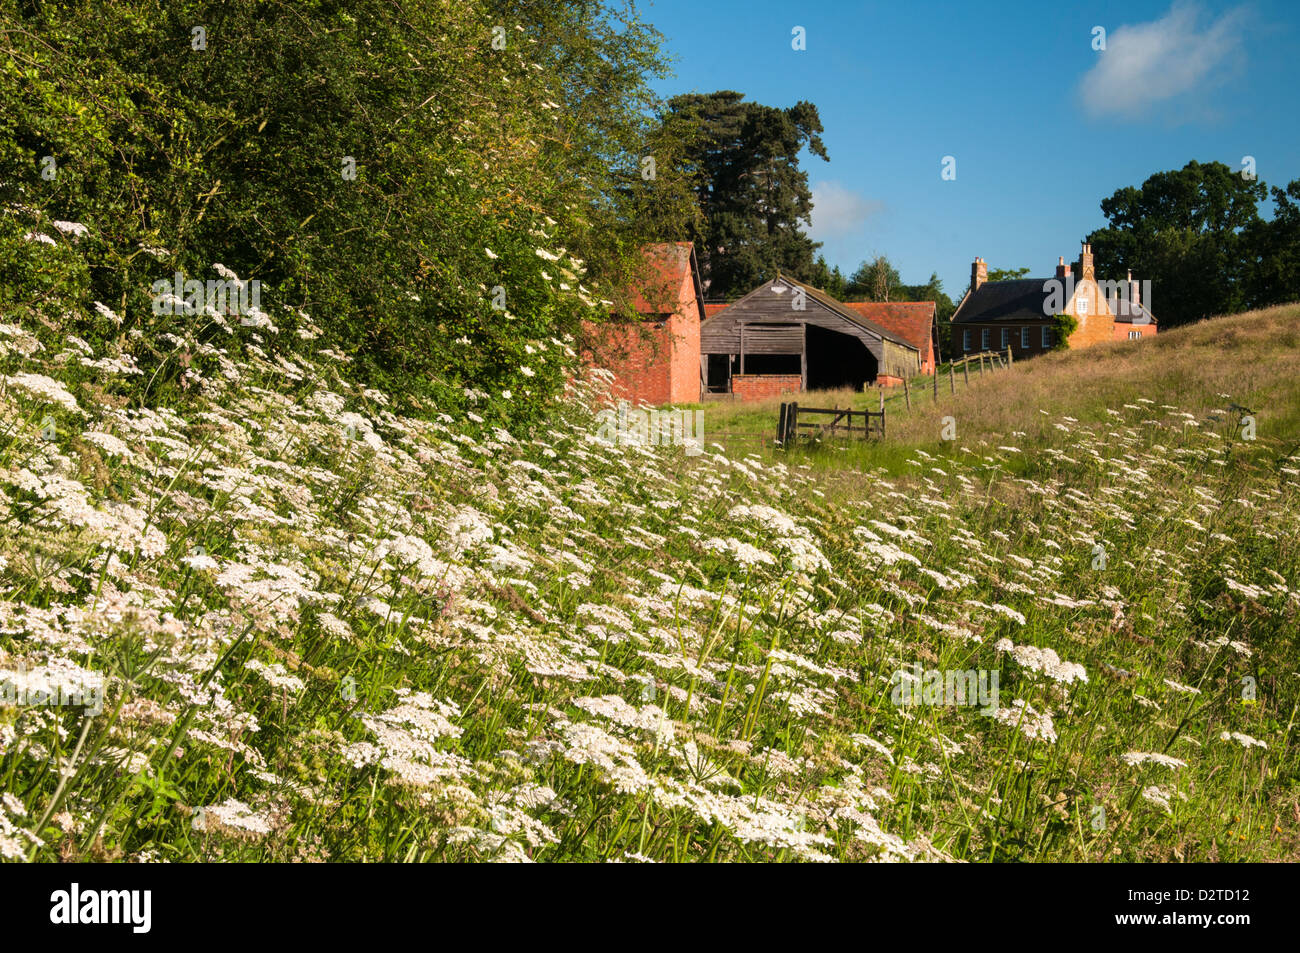 A swathe of wild plants growing within a hayfield with brick farm buildings beyond at Harlestone, Northamptonshire, - Stock Image